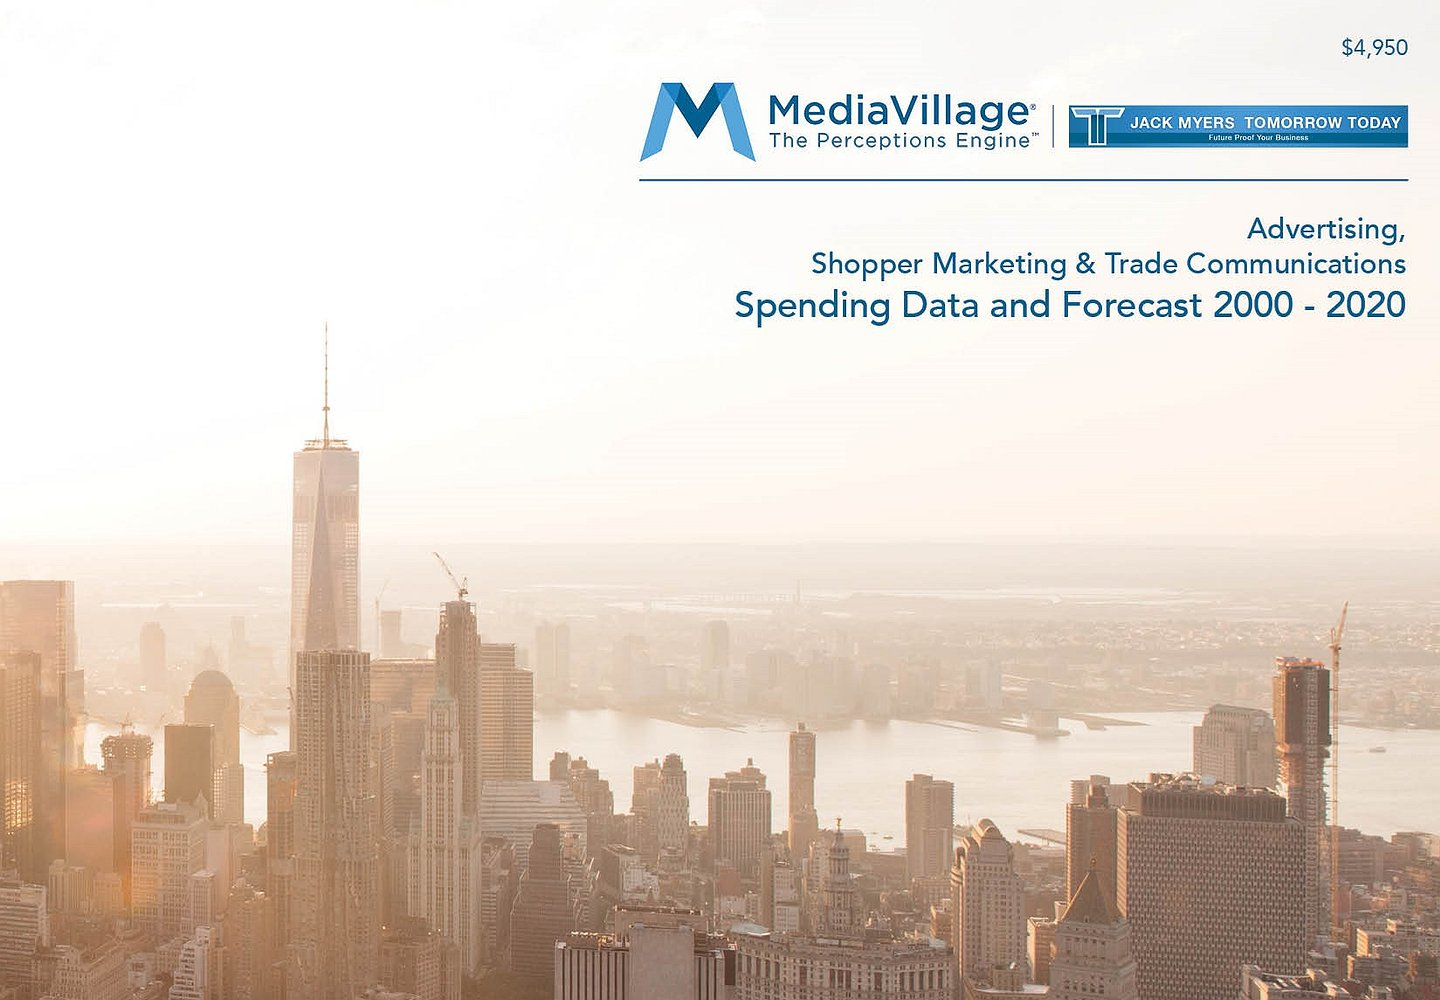 Download Today: Modest Growth Forecast for Out-of-Home Ad Spend